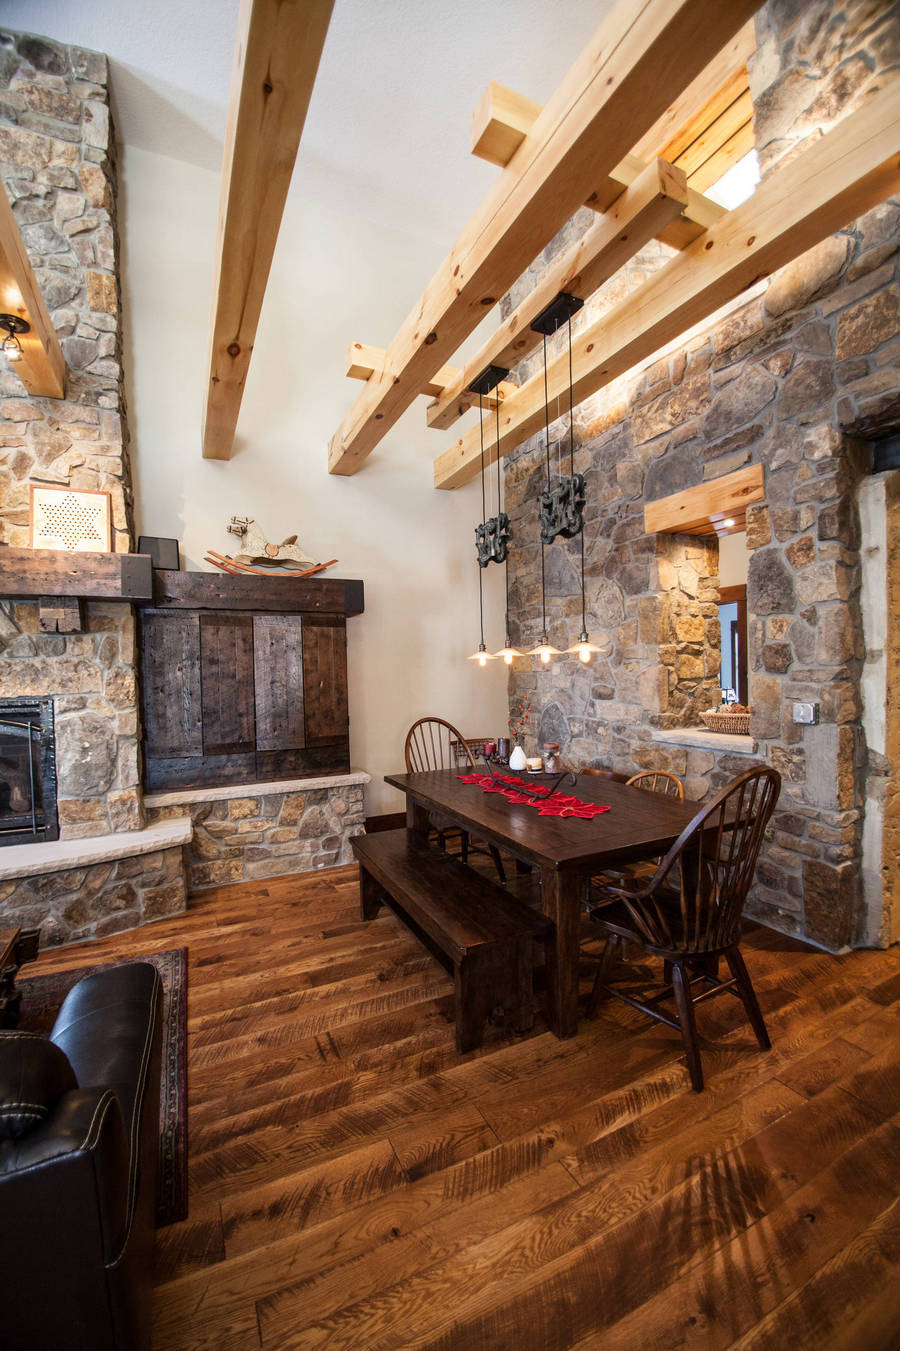 Rustic Walls Interior Rustic Ideas For Interior Walls And Decor Designs Rustic Living